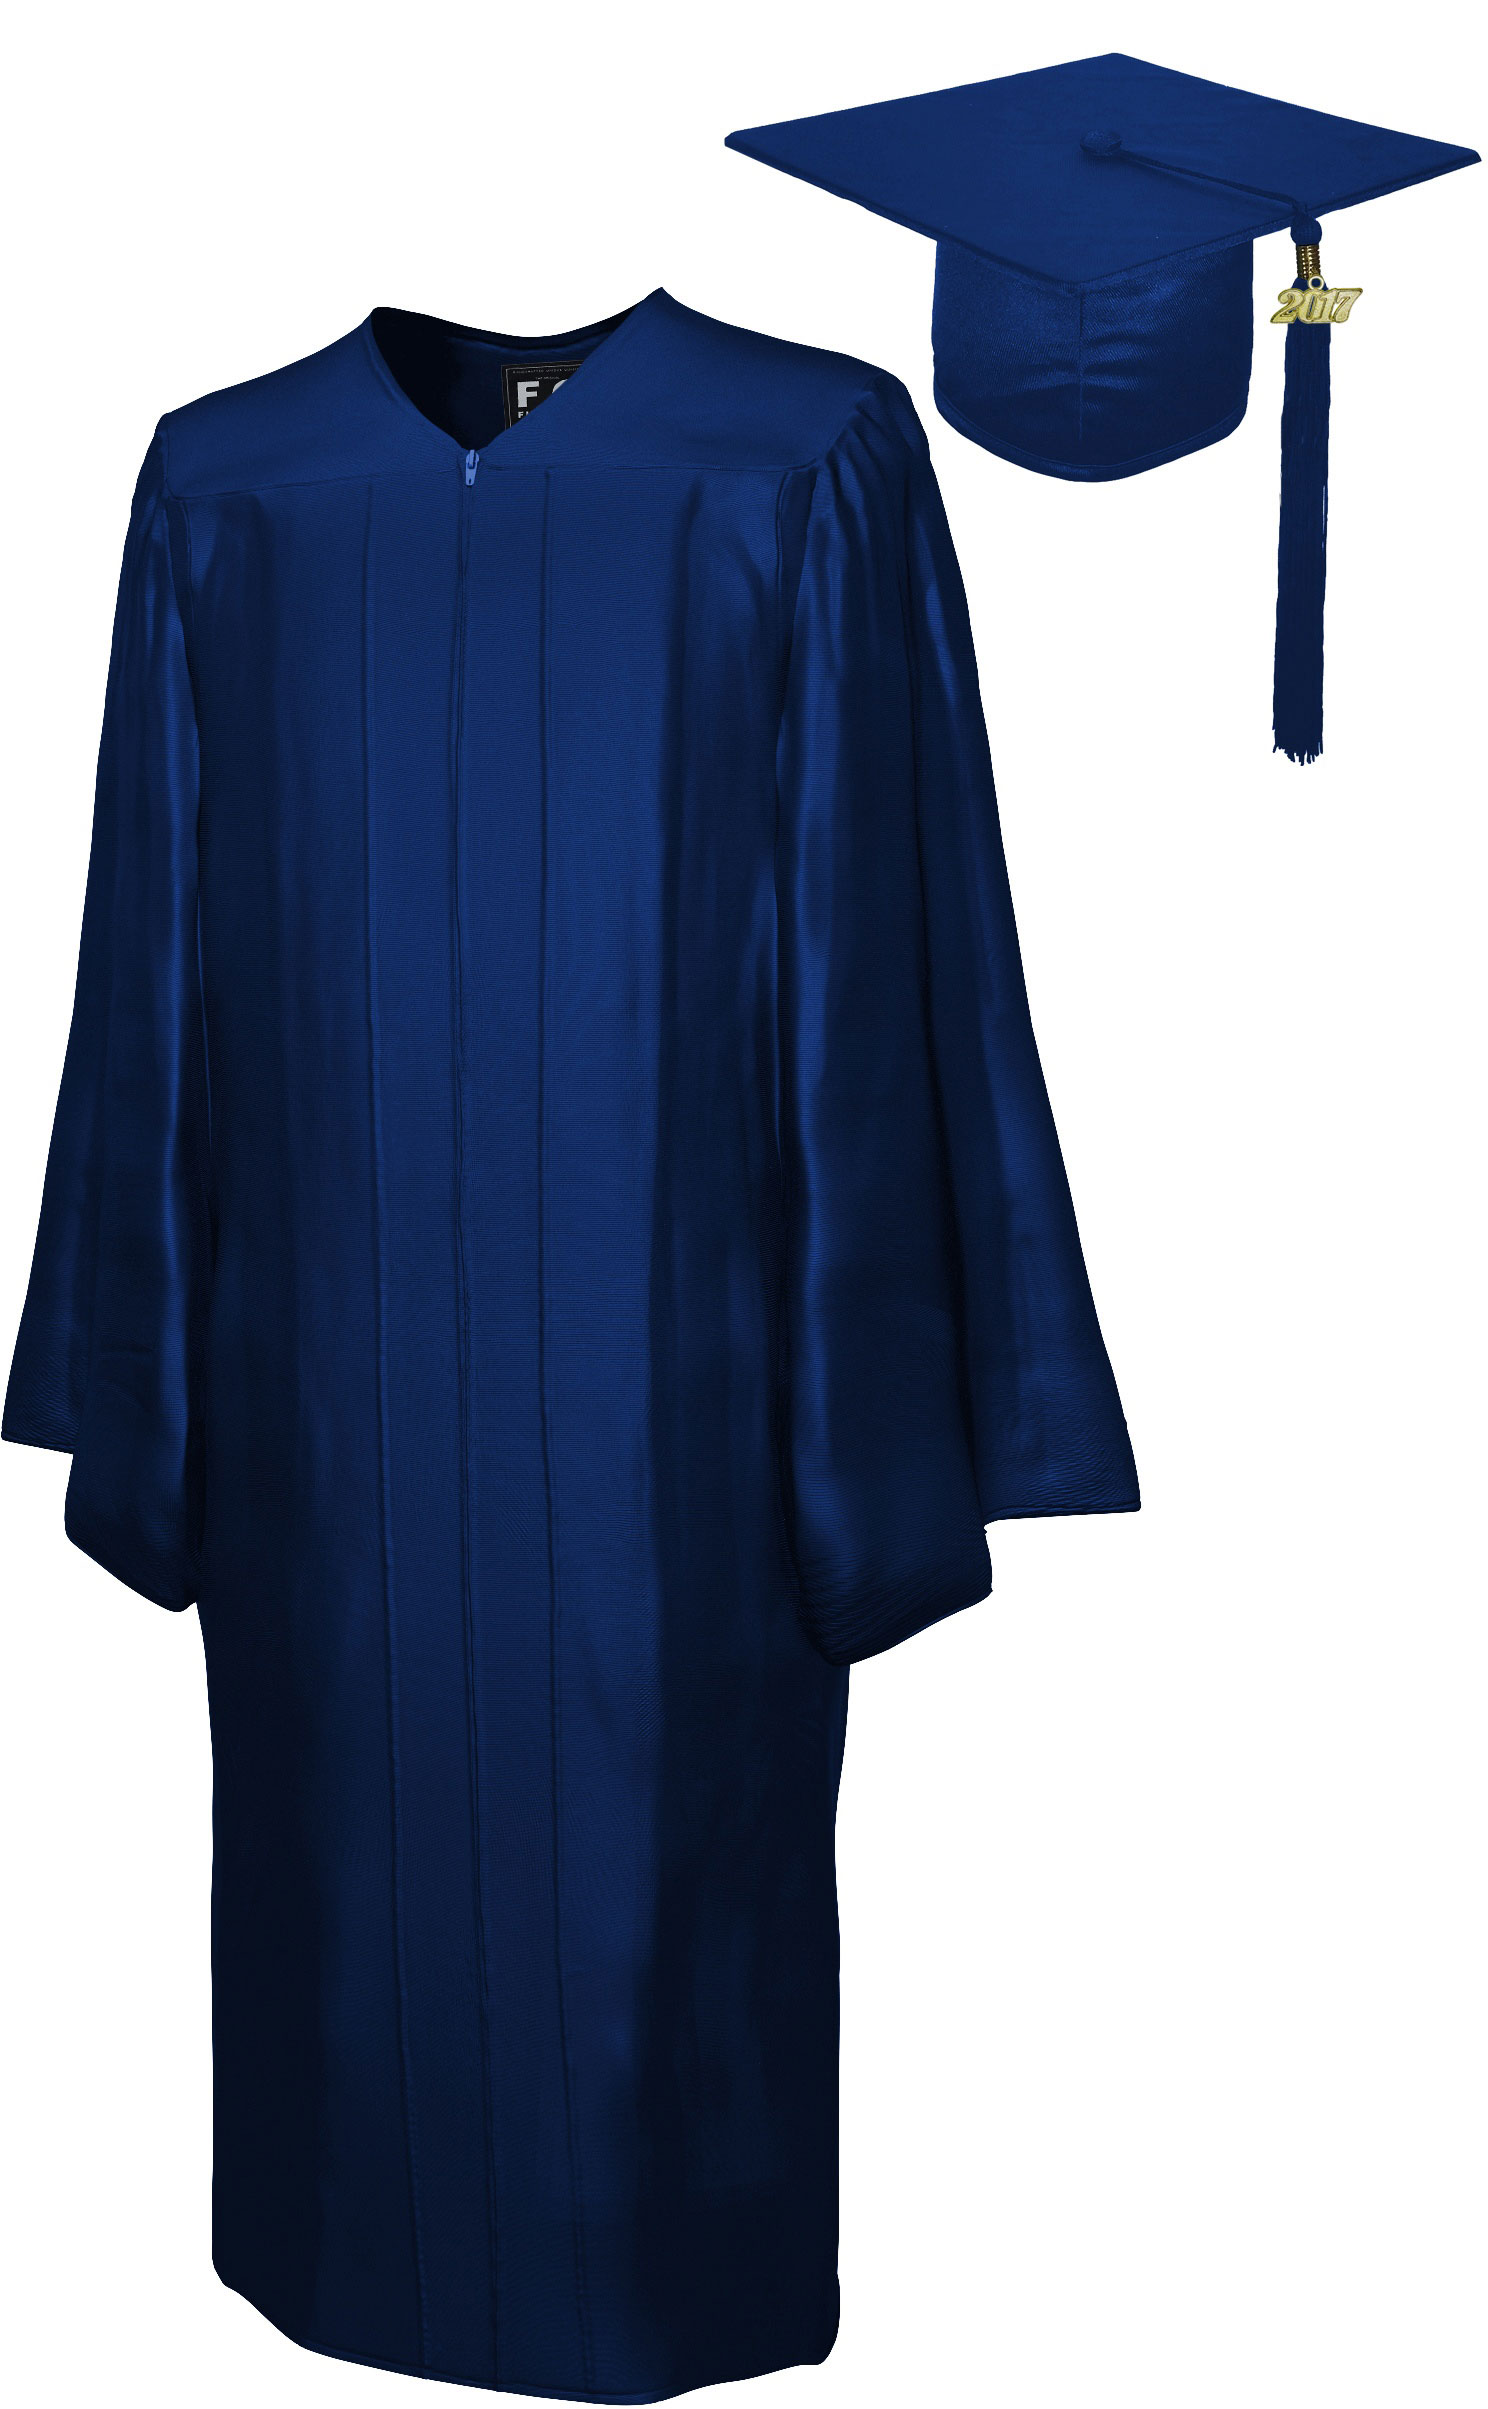 SHINY NAVY BLUE CAP, GOWN, TASSEL, DIPLOMA COVER SET-rs4251465611515